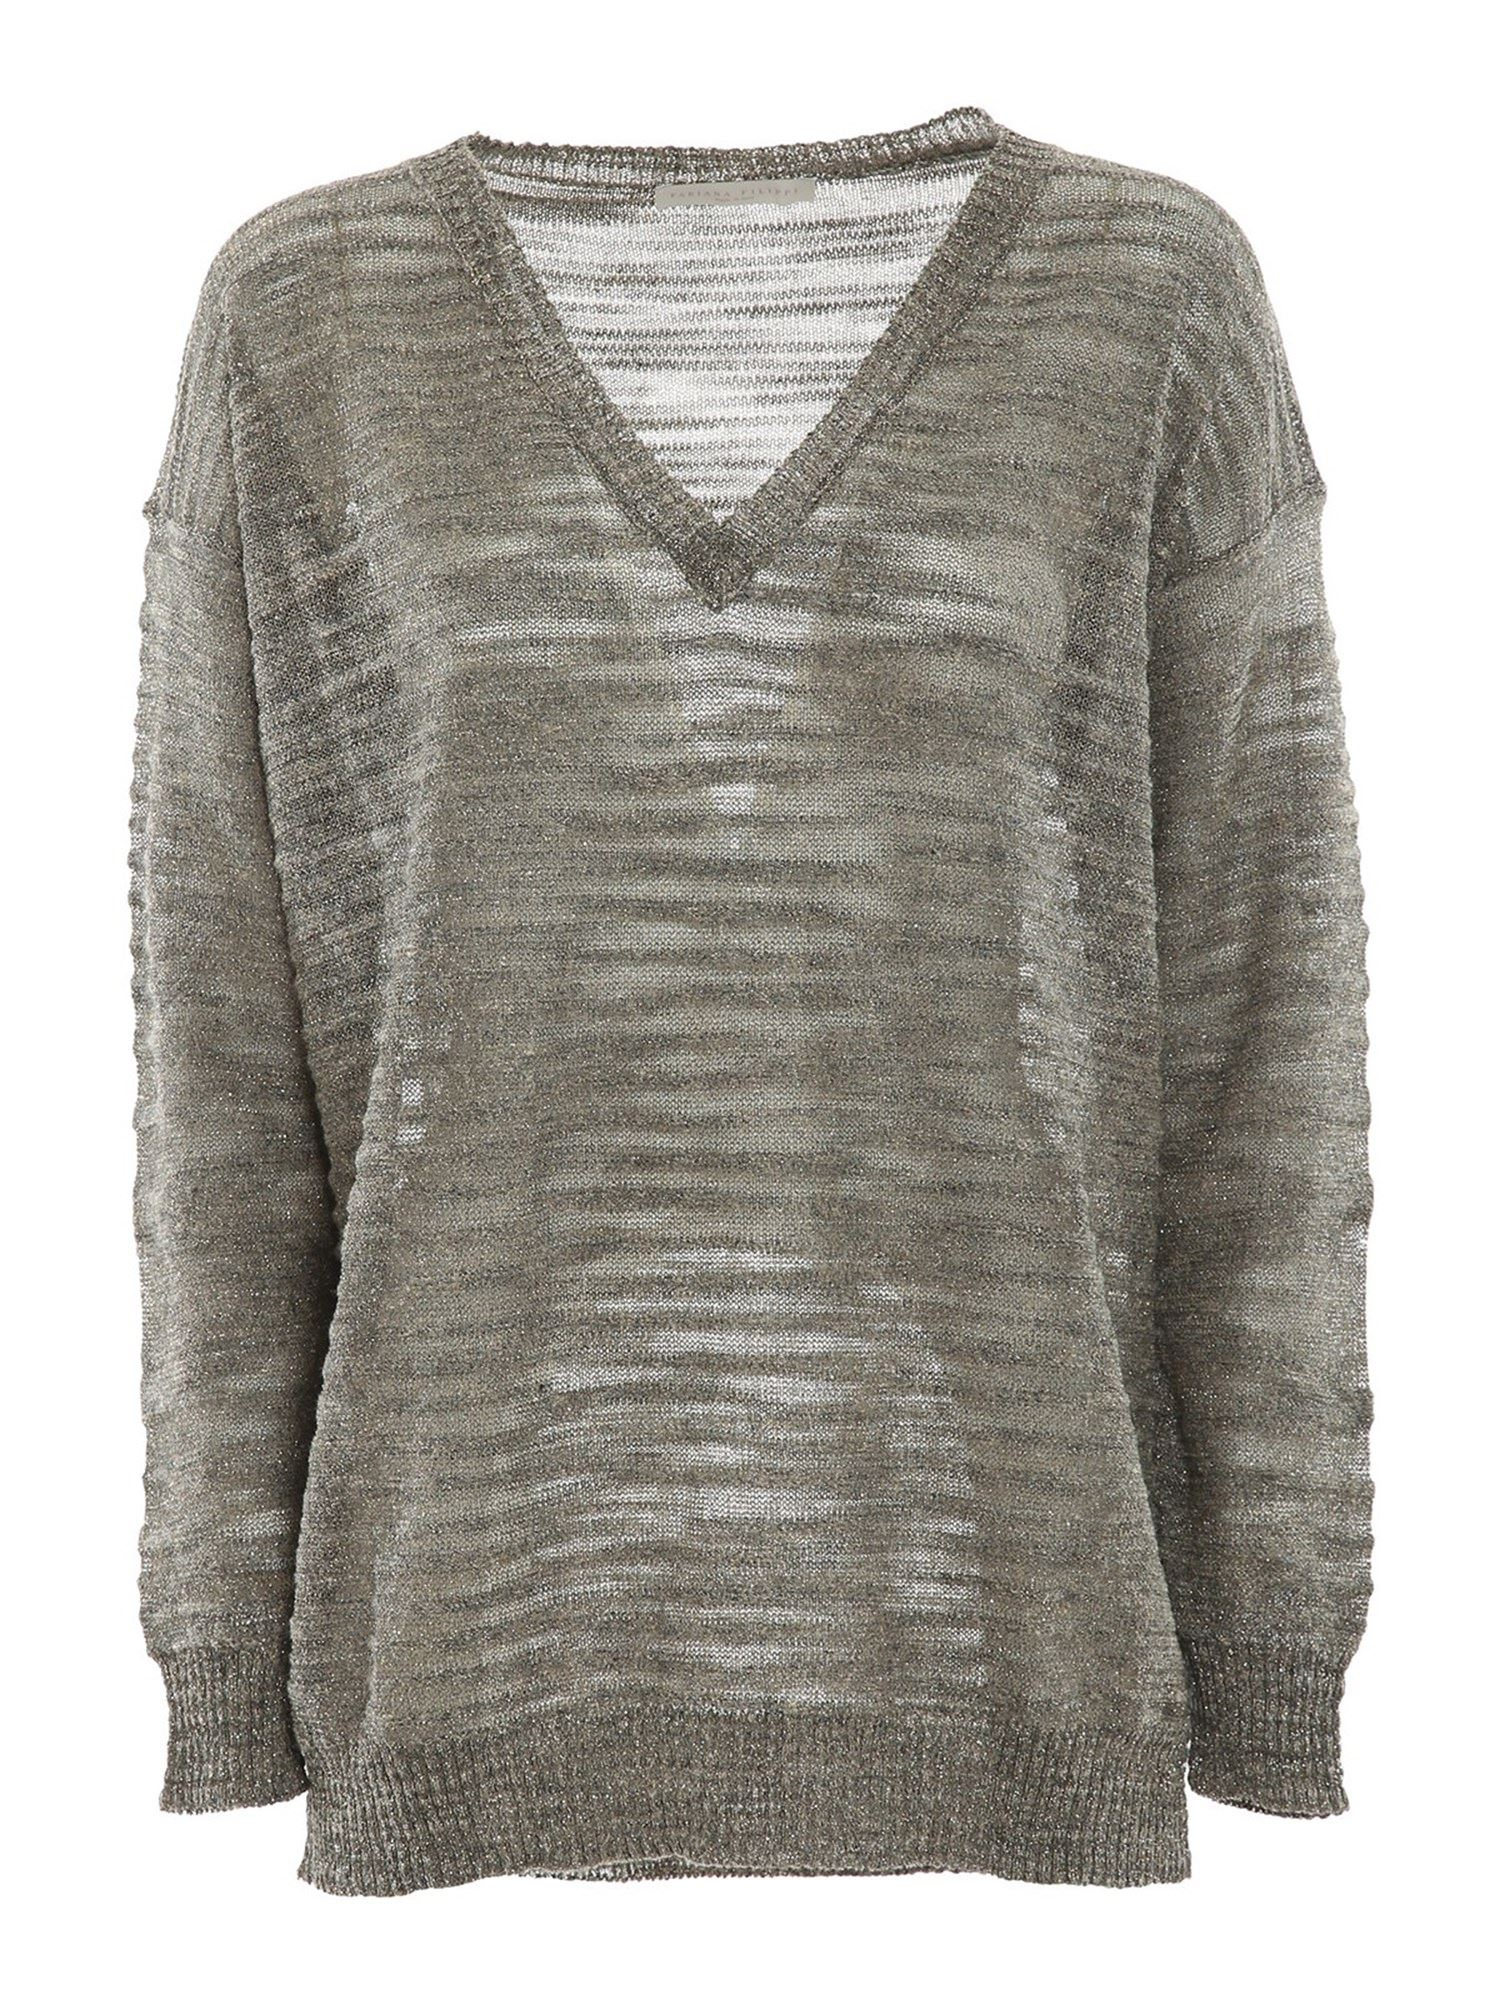 Fabiana Filippi Knits LUREX-KNIT V NECK JUMPER IN GREY